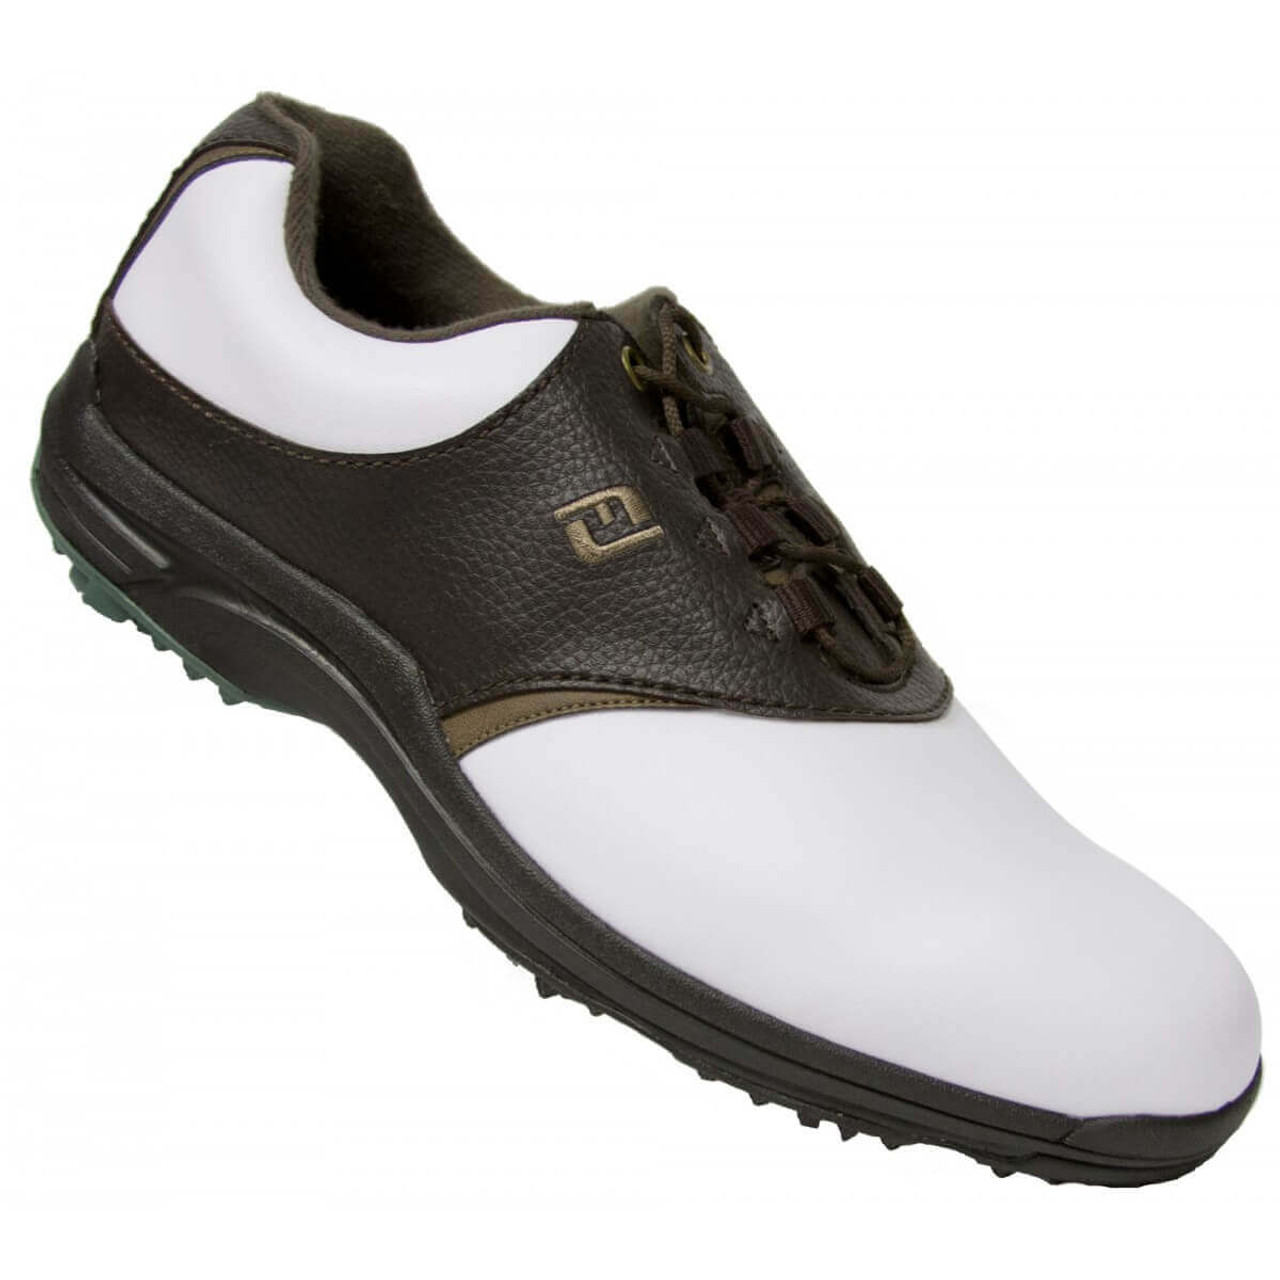 Mens Golf Shoes Clearance Sale